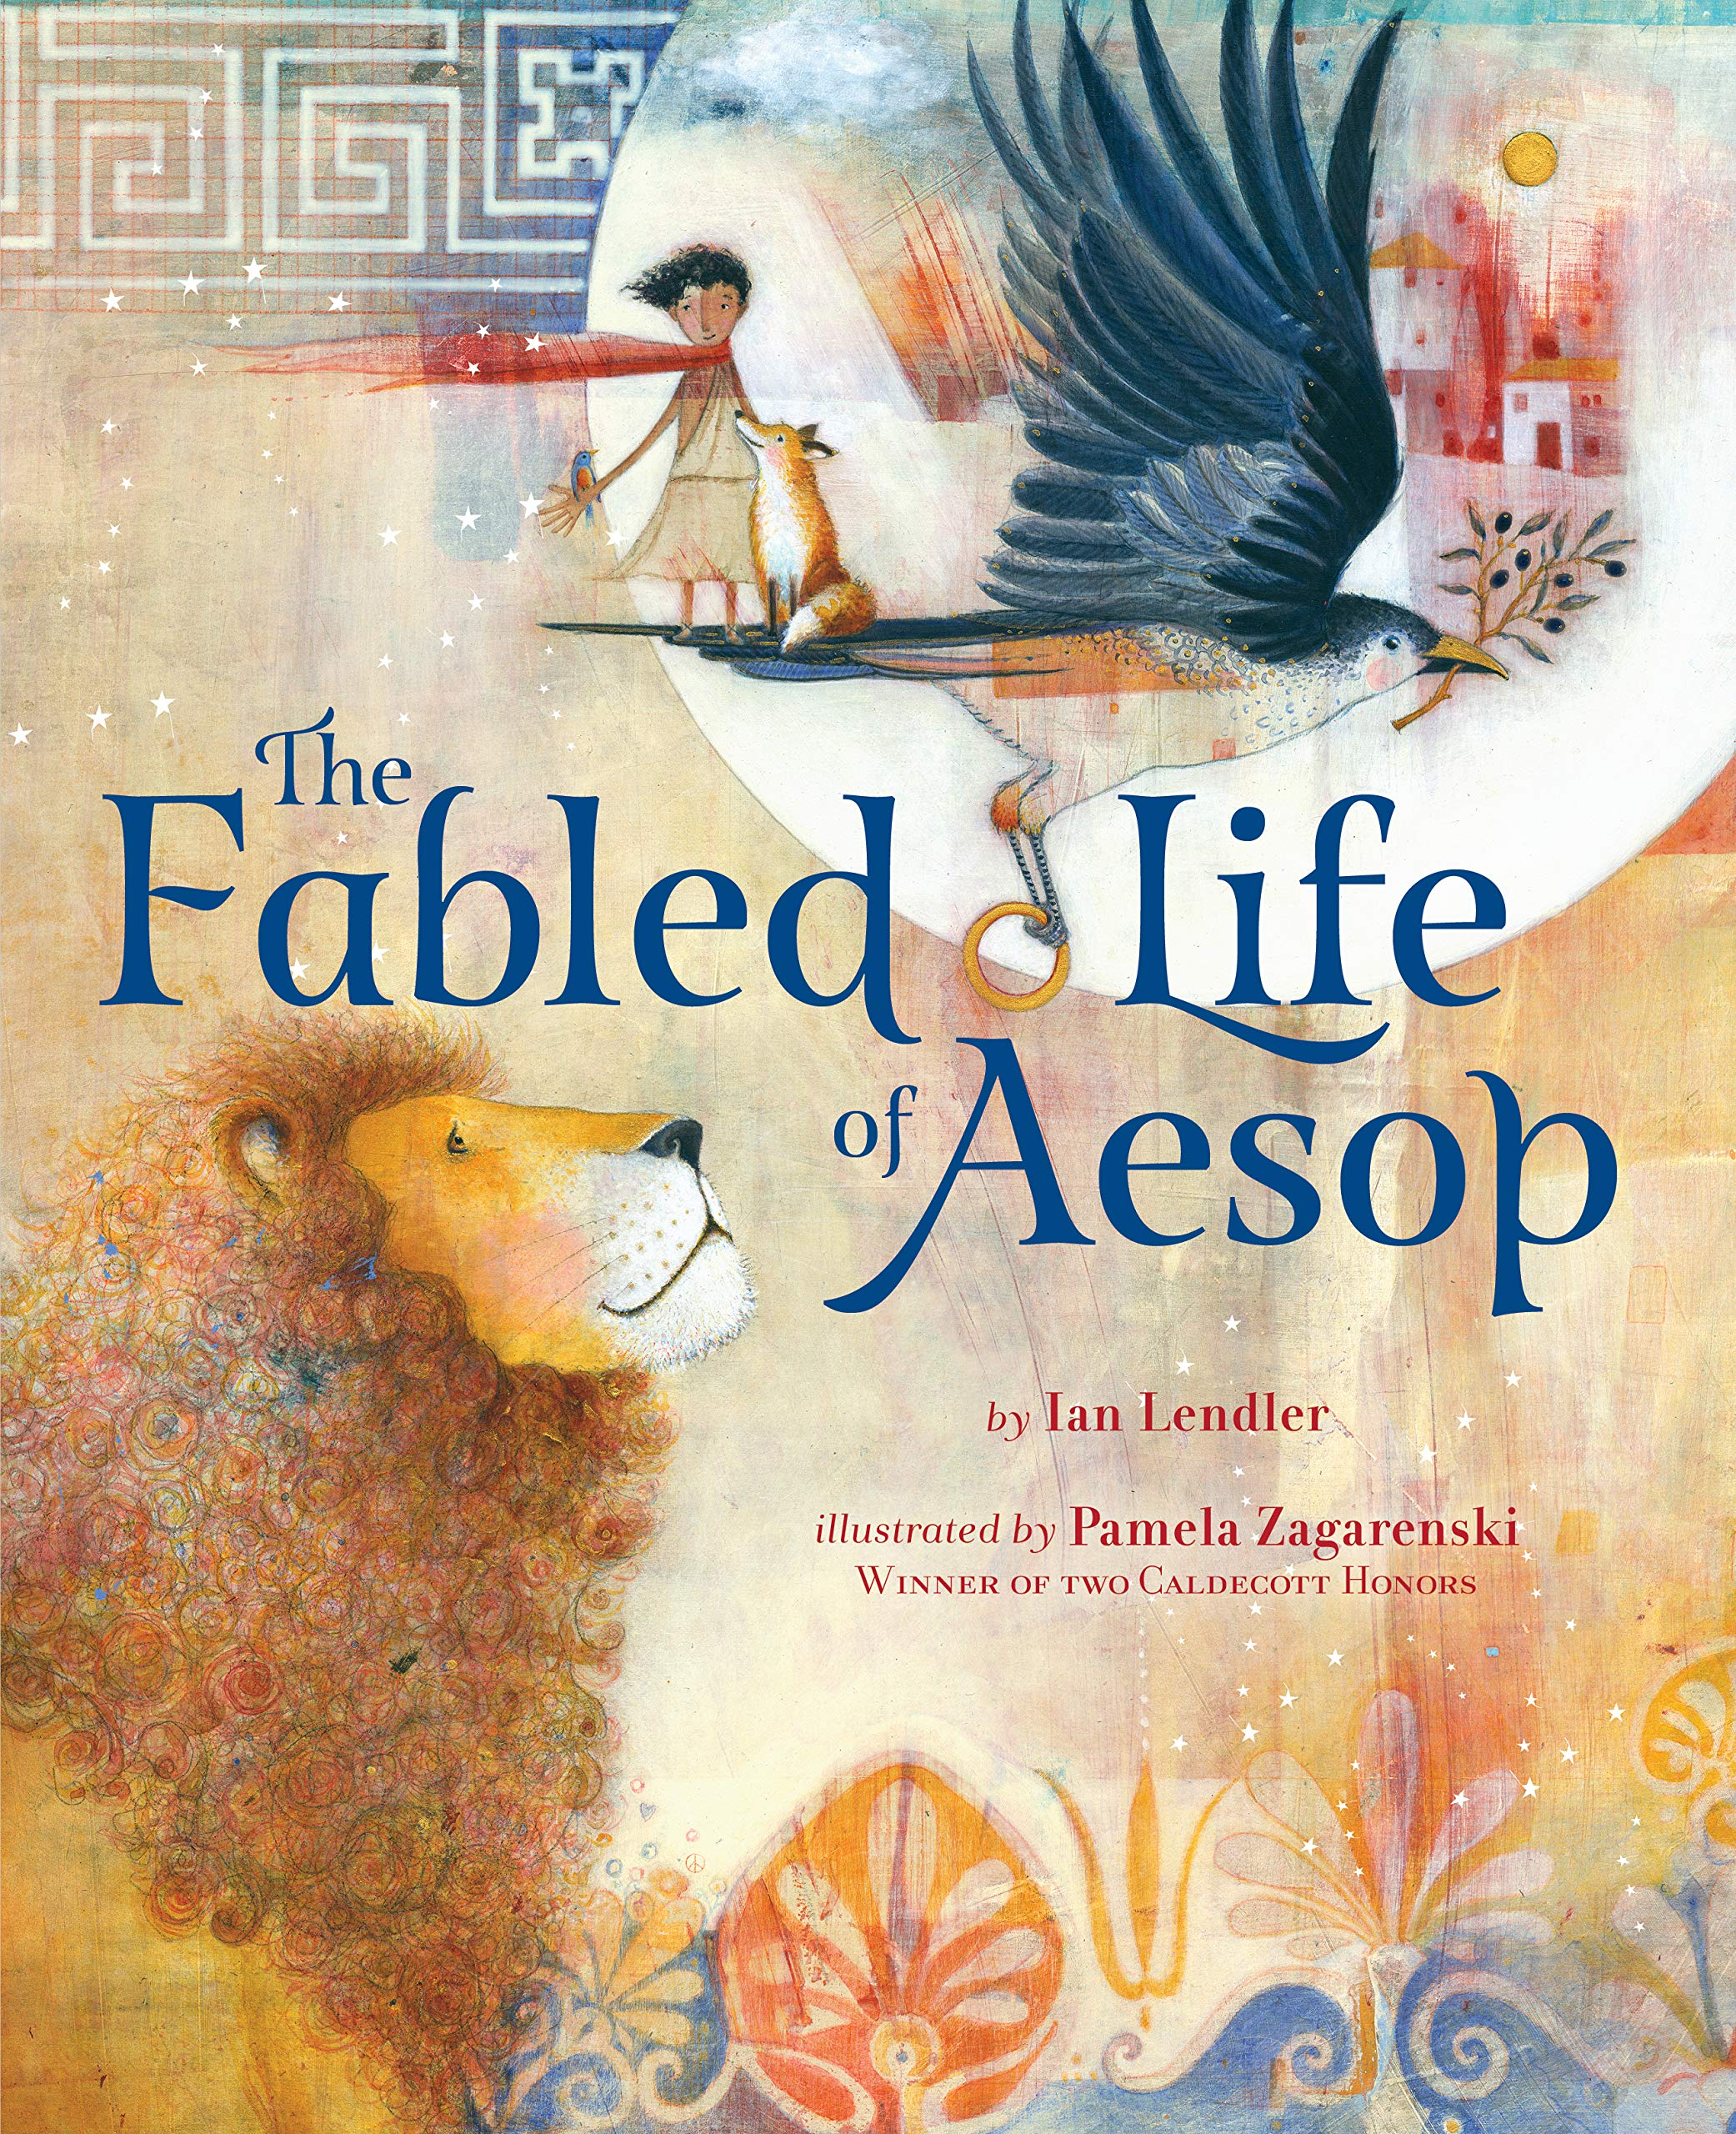 The Fabled Life of Aesop: The extraordinary journey and collected tales of  the world's greatest storyteller: Lendler, Ian, Zagarenski, Pamela:  9781328585523: Amazon.com: Books